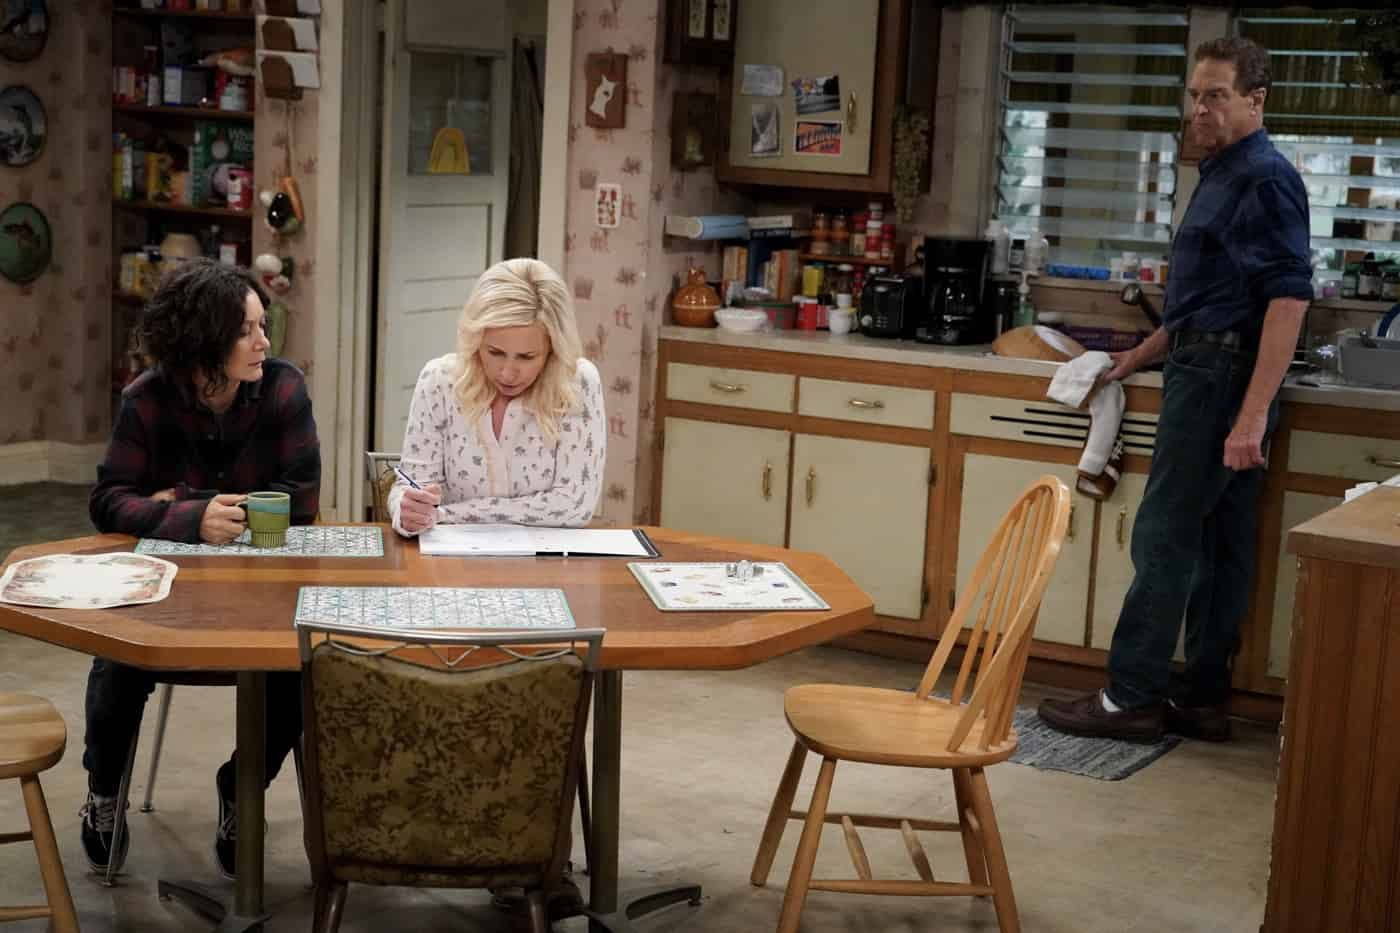 """THE CONNERS Season 4 Episode 3-""""Sober Sex, Plastic Silverware, and Losing My Religion"""" – Part of Becky's recovery program mandates she make amends with people she has lied to over the years, leading her to meet up again with former high school friend Mikey to apologize for lying to him about her living a successful life. Meanwhile, Darlene visits with Pastor Phil (Jason Alexander), and Louise continues planning her wedding on """"The Conners,"""" WEDNESDAY, OCT. 6 (9:00-9:30 p.m. EDT), on ABC. (ABC/Eric McCandless) SARA GILBERT, LECY GORANSON"""